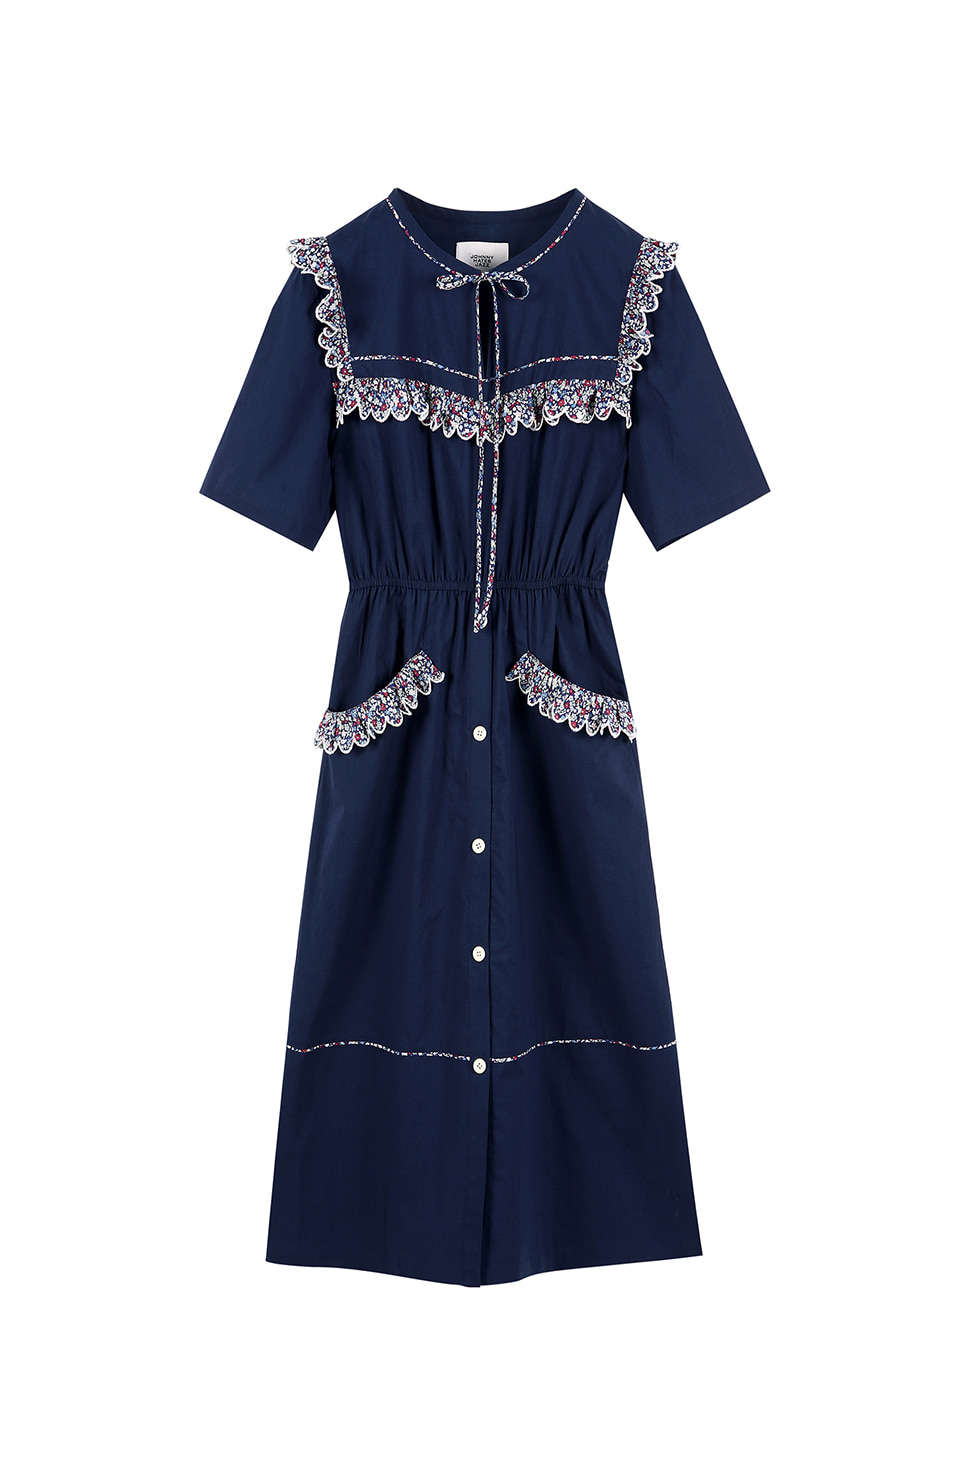 FLORAL COTTON DRESS - NAVY